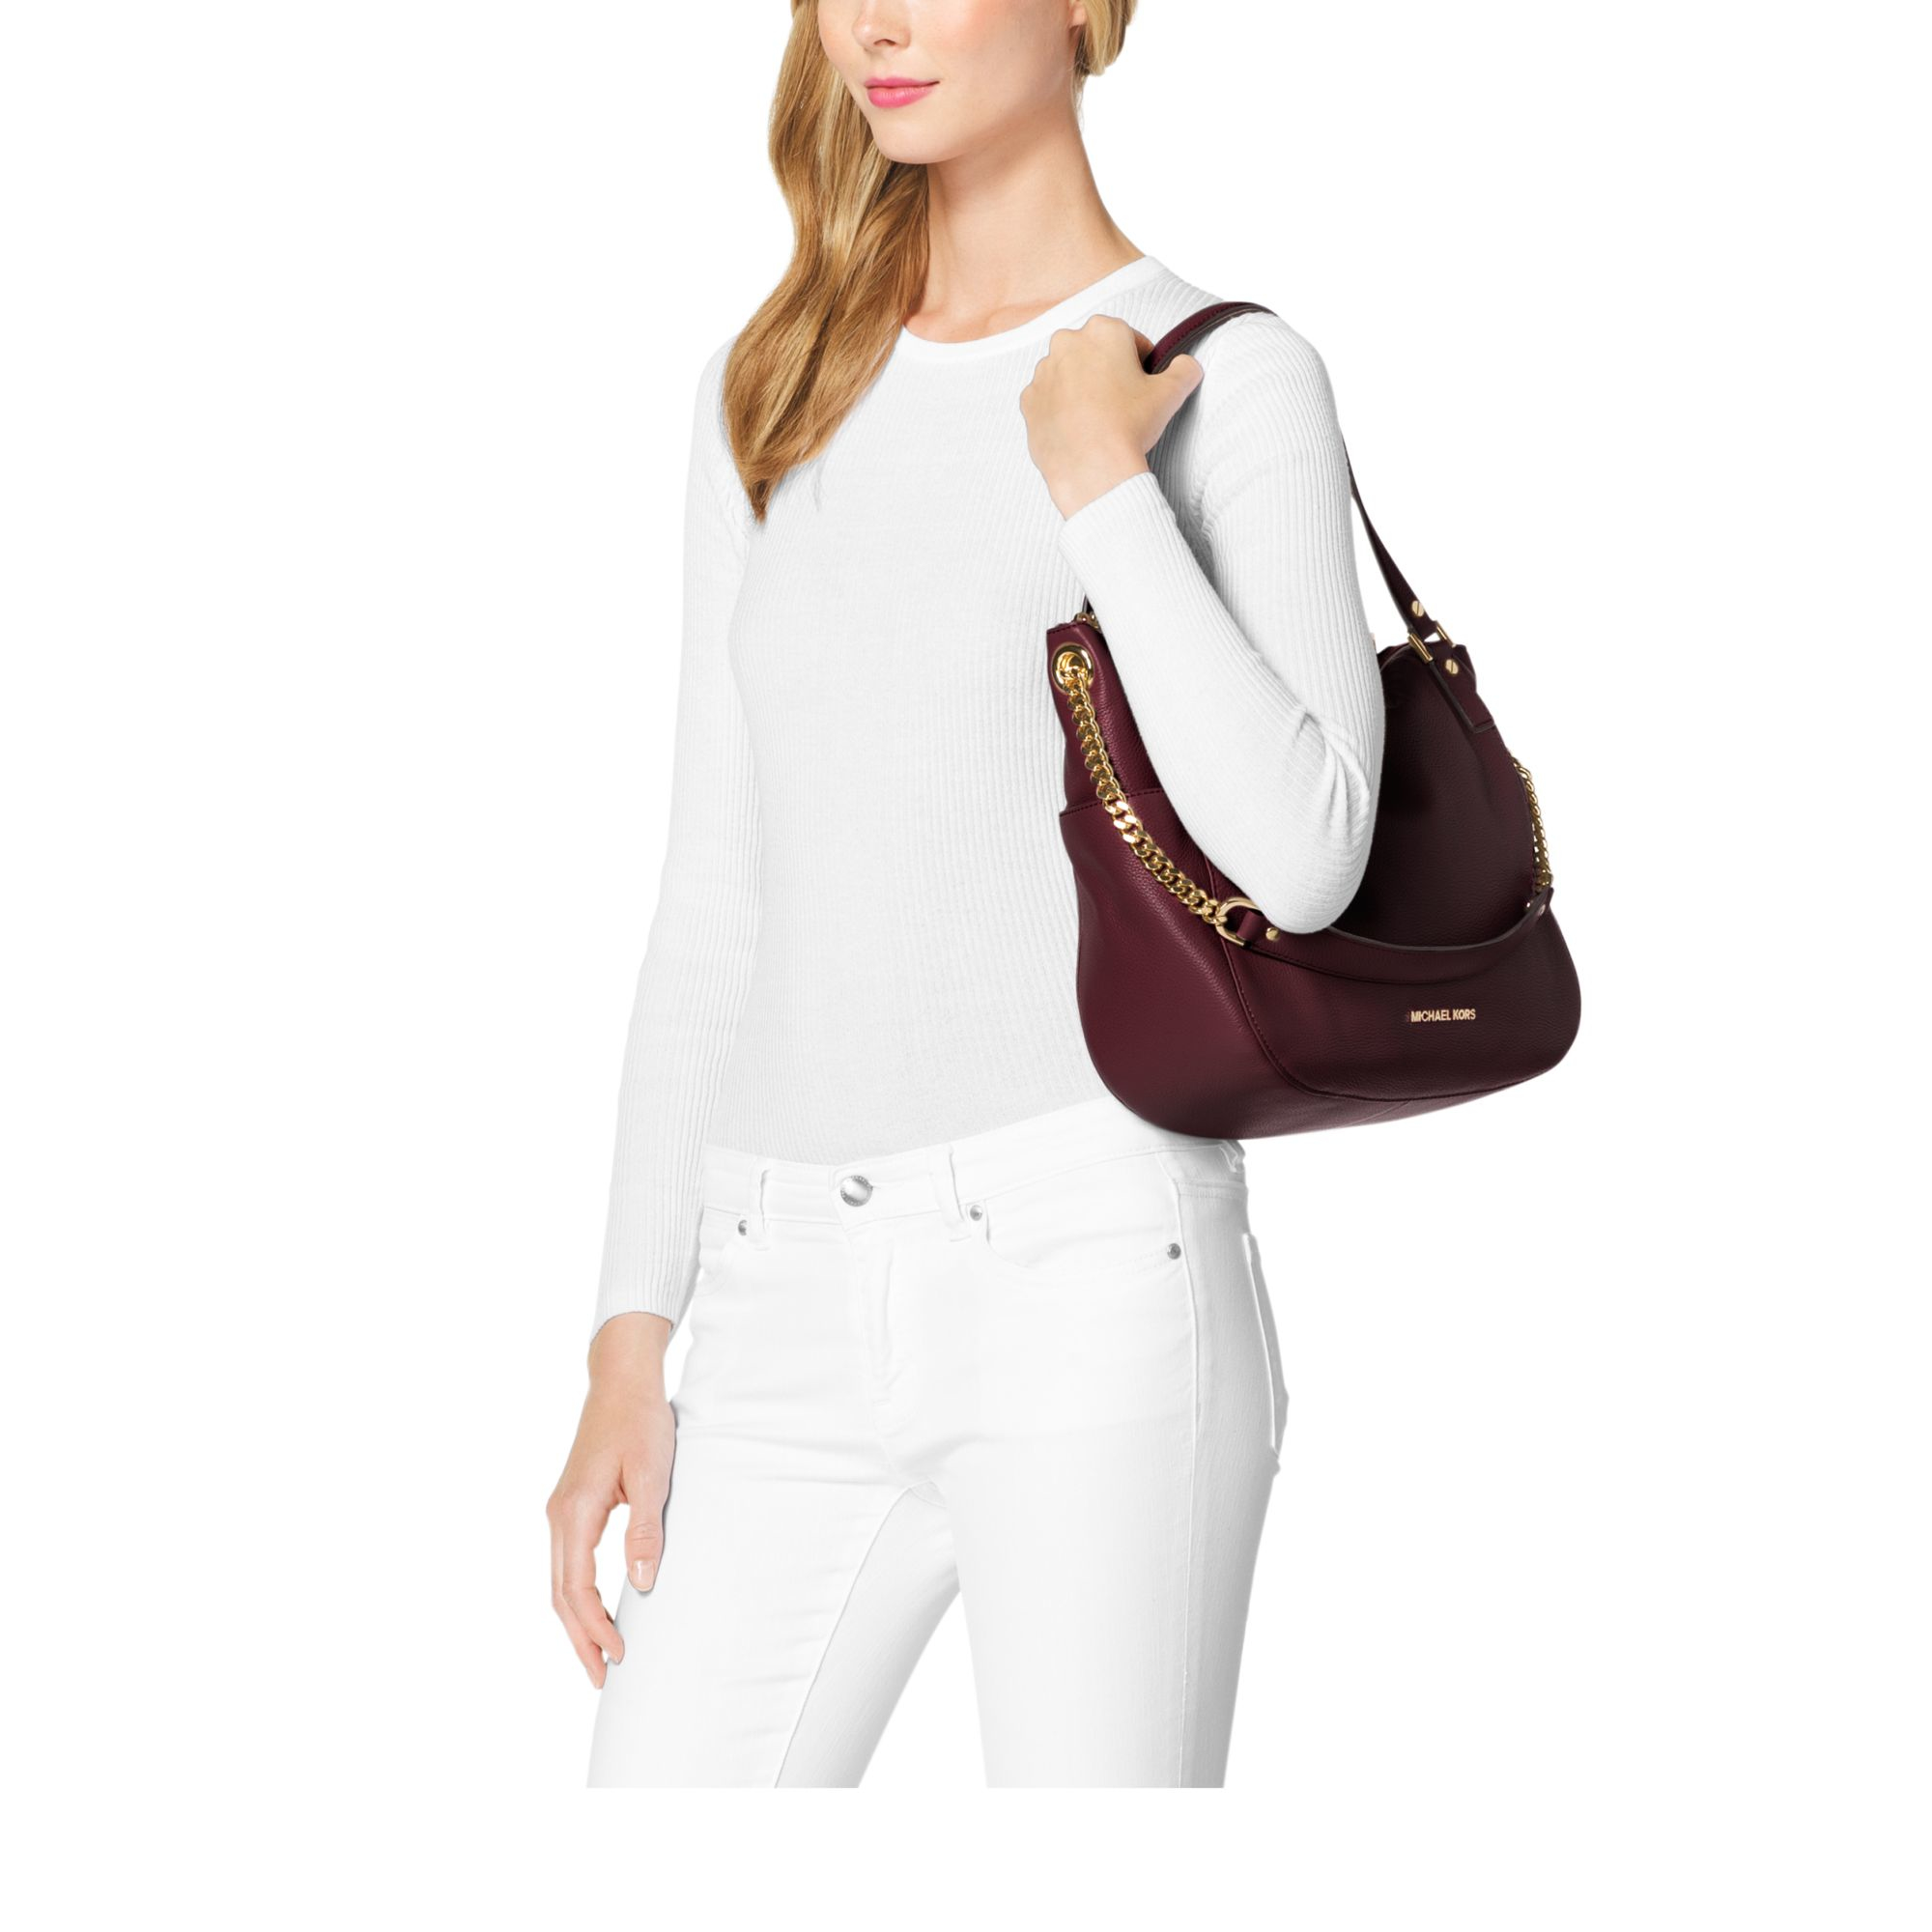 1a9a0e41a760 ... convertible shoulder bag pearl gray neiman marcus 693ec f2998 denmark lyst  michael kors chandler large leather tote in purple 9a254 ab401